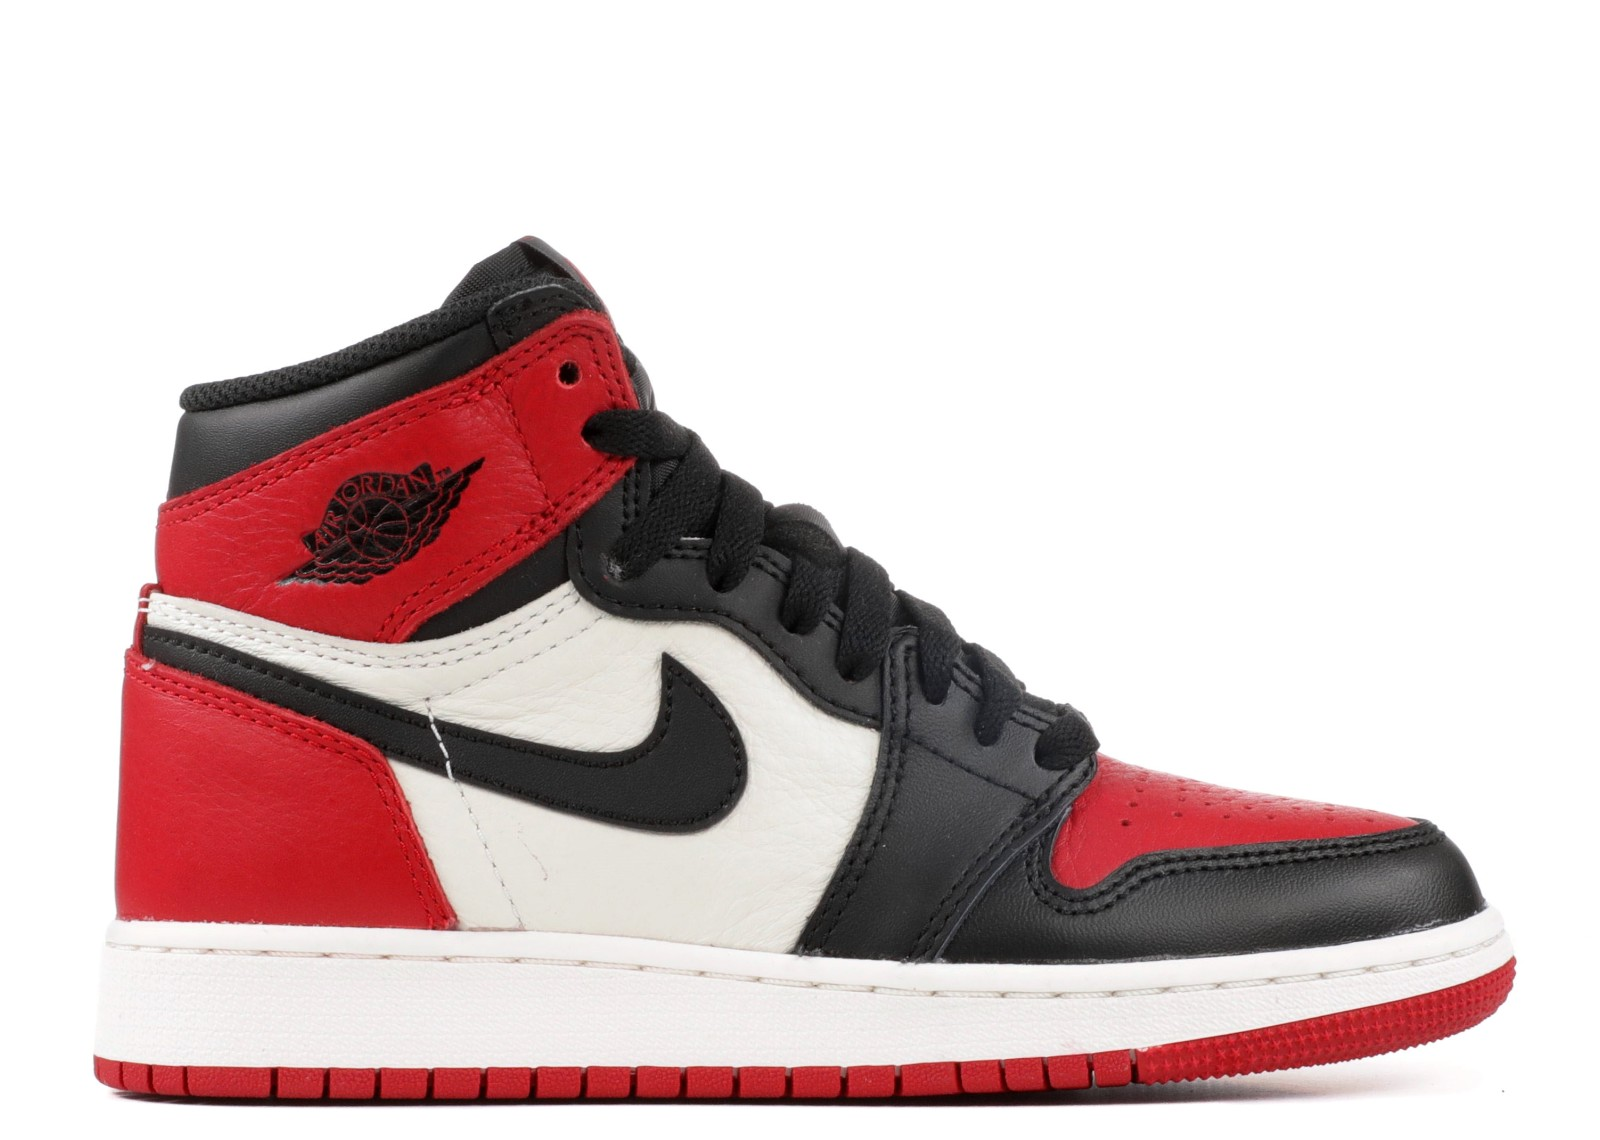 AIR JORDAN 1 RETRO HIGH OG GS BRED TOE – Retro Kicks Online 28c1e5b3bd09